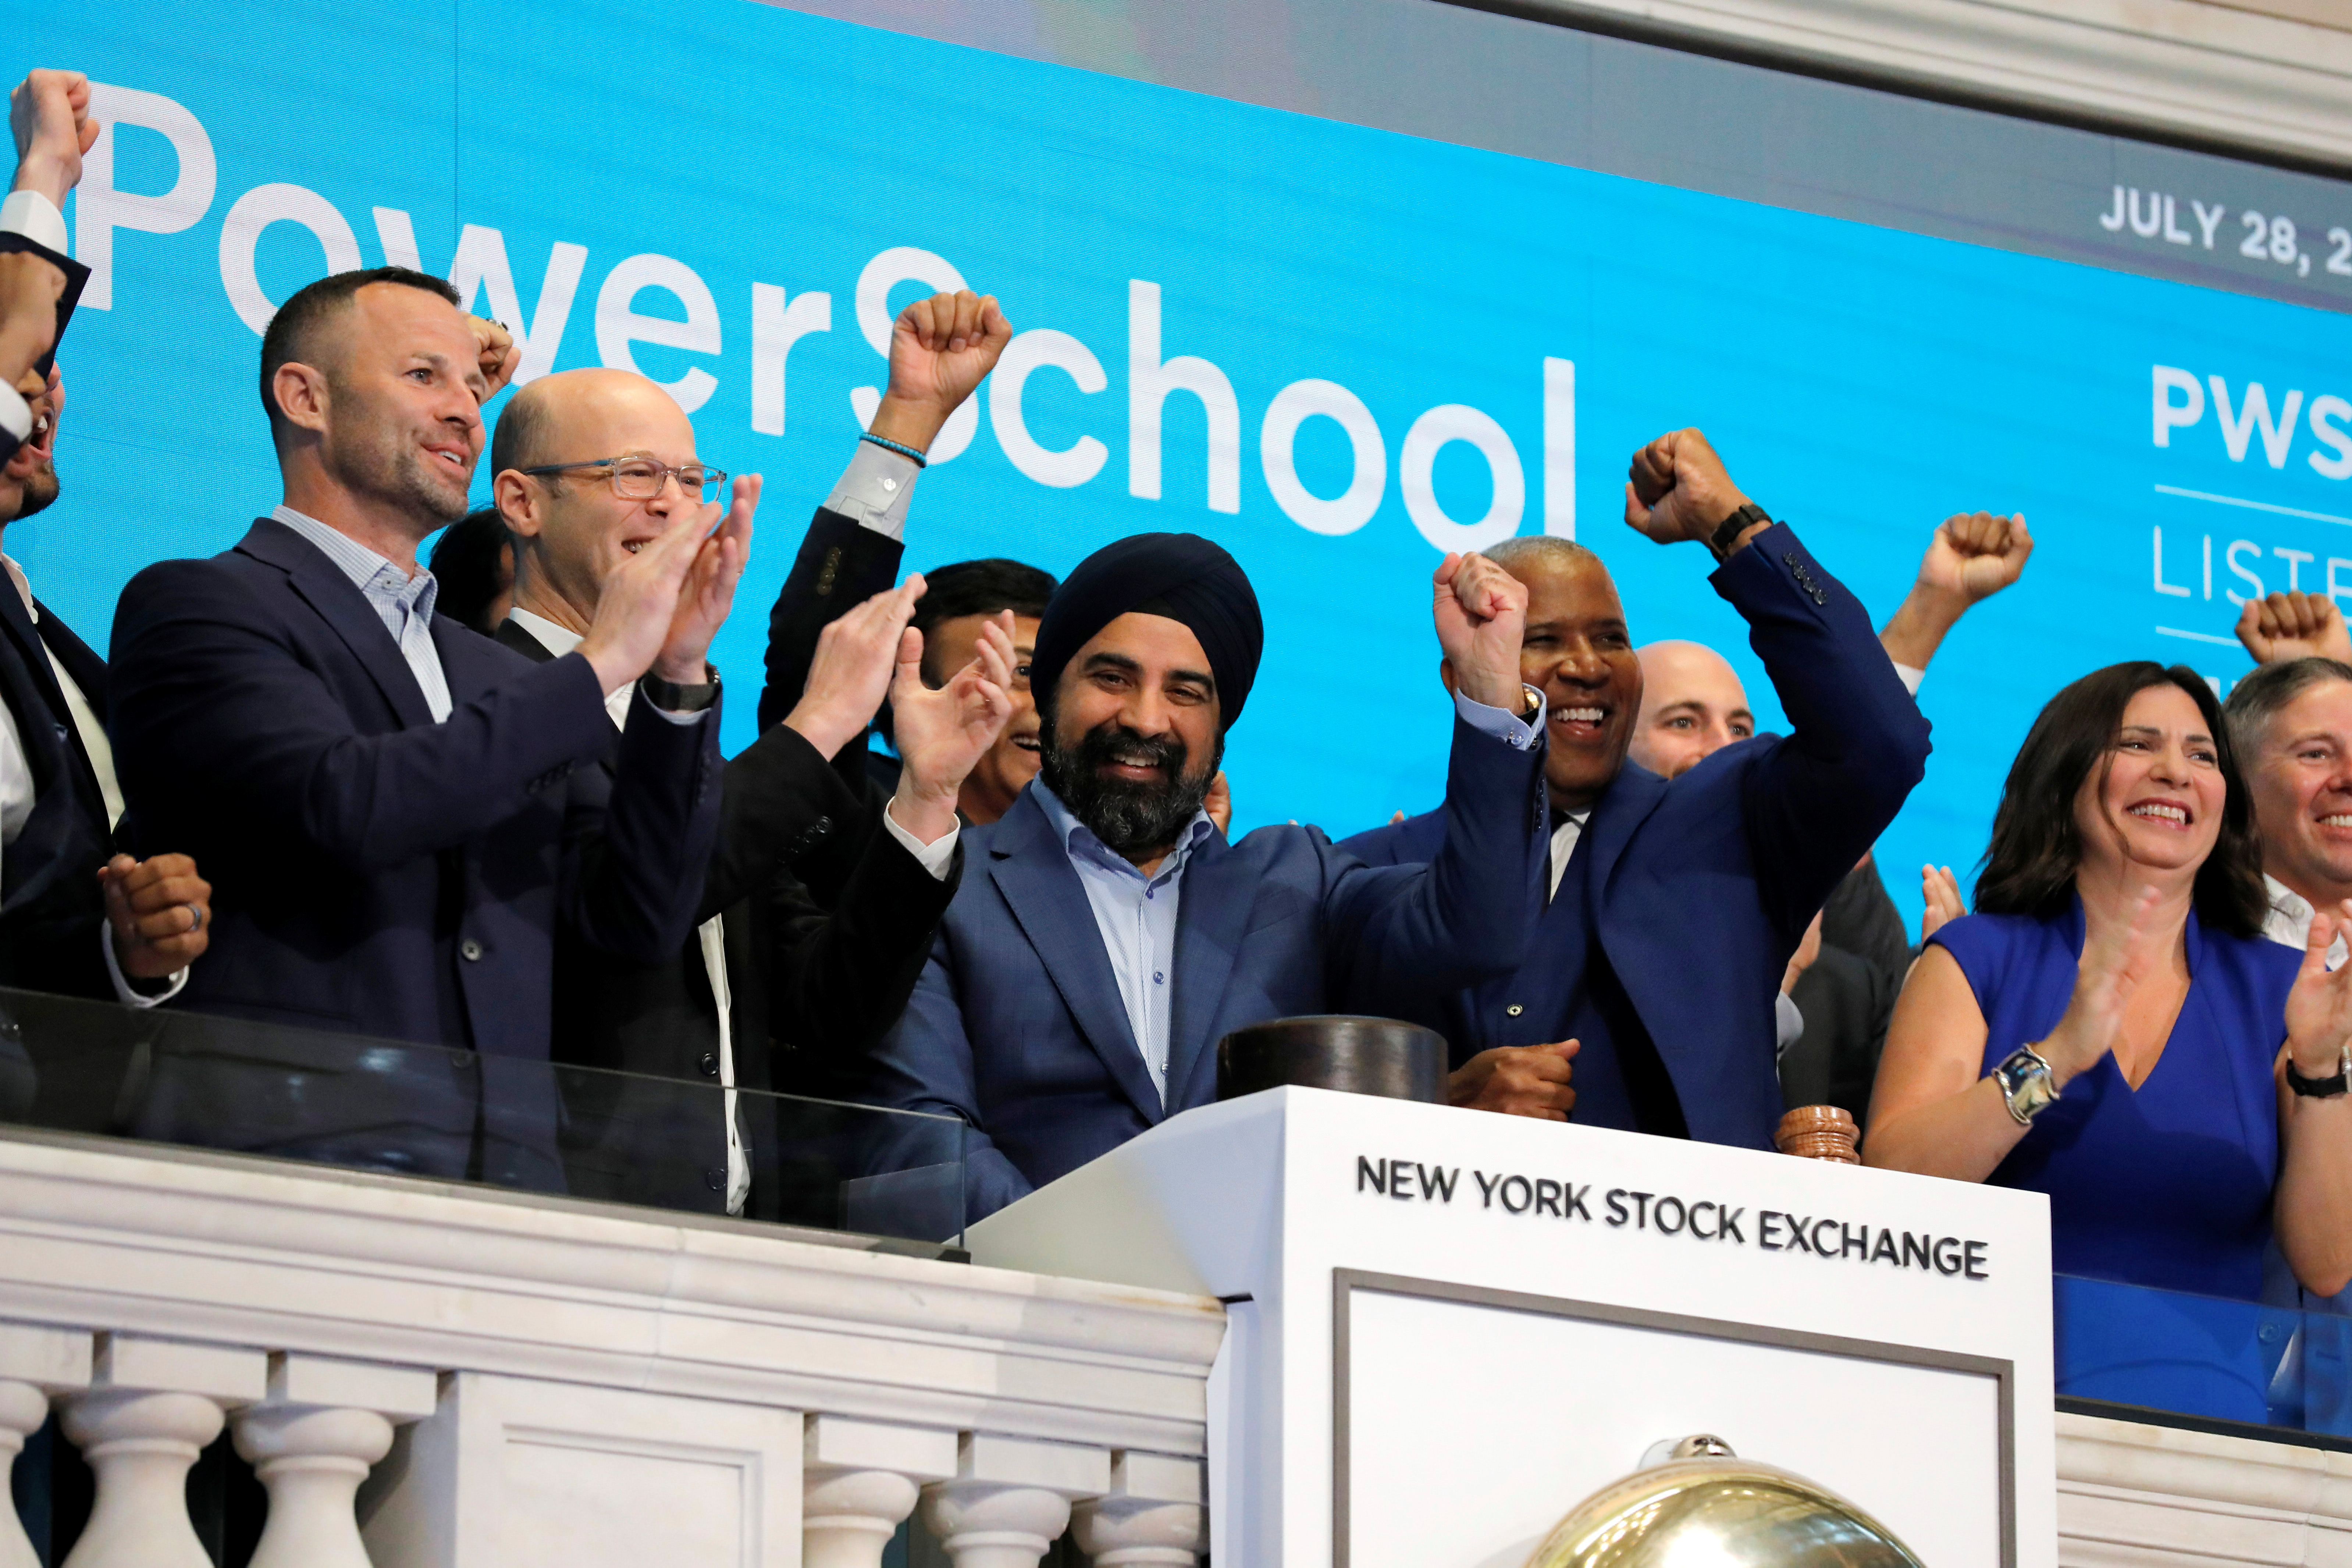 PowerSchool CEO Hardeep Gulati rings the opening bell for their Initial public offering (IPO) the New York Stock Exchange (NYSE) in New York City, New York, U.S., July 28, 2021. REUTERS/Andrew Kelly